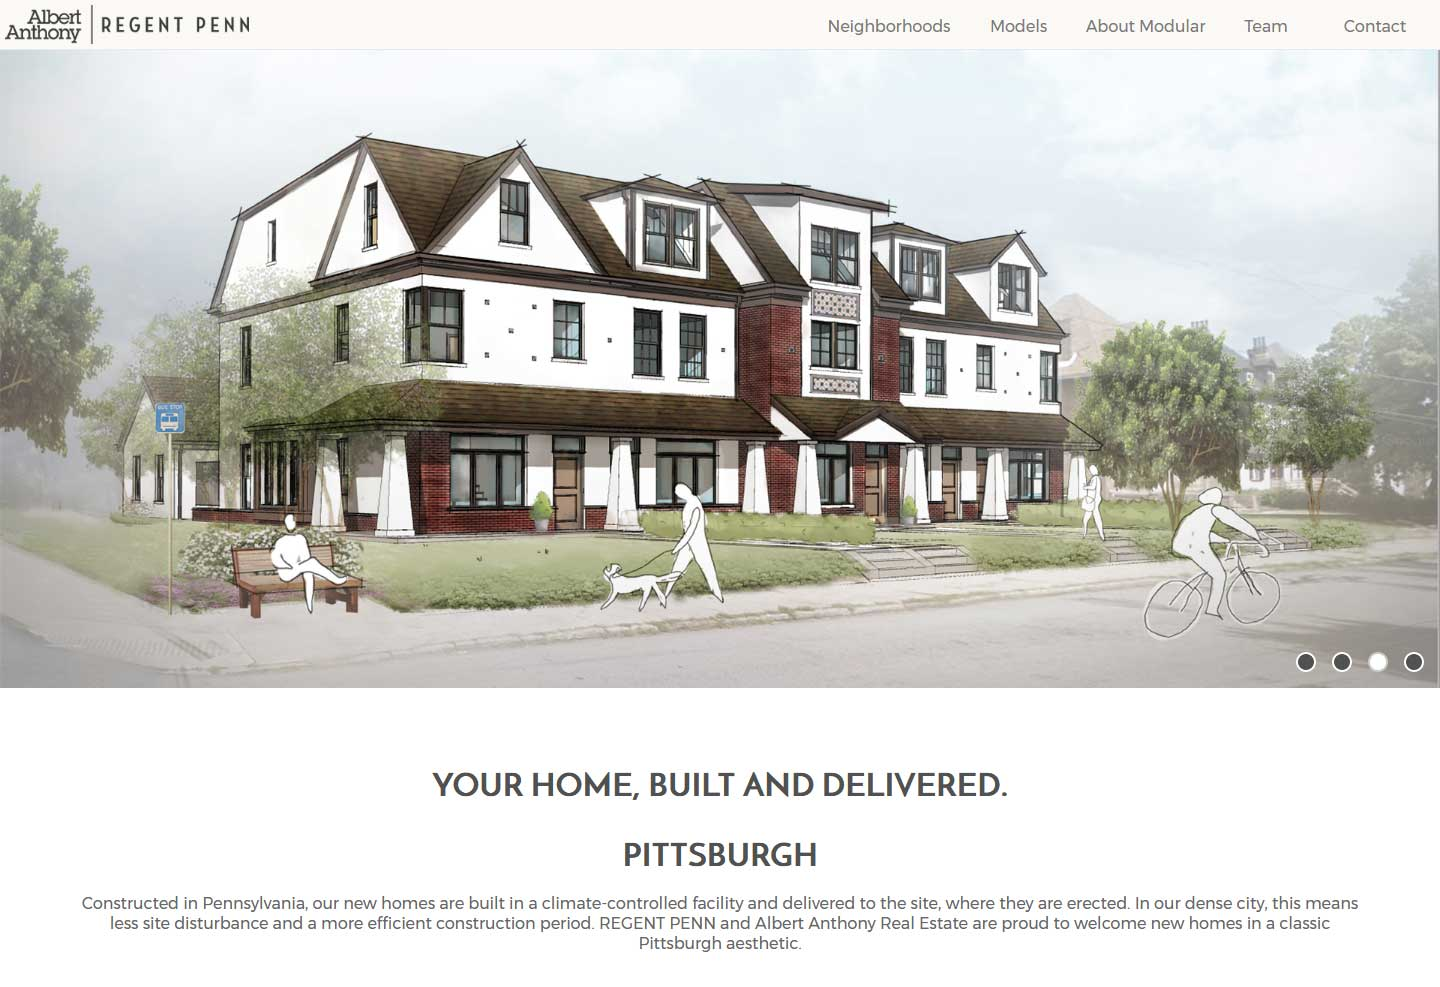 regent penn albert anthony real estate has partnered with regent penn to bring modular homes to pittsburgh this broker builder project is one of the first endeavors to